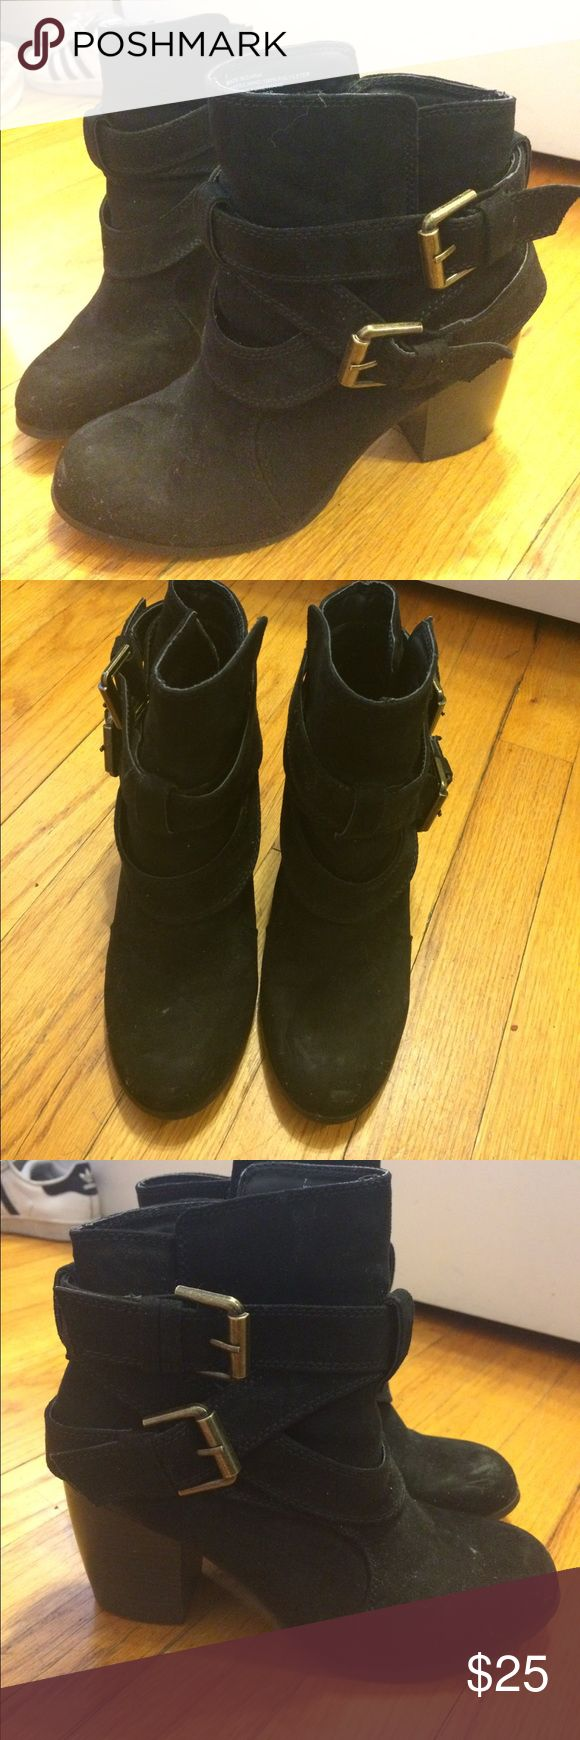 American Eagle Outfitters Black Booties sz 7 Only worn a few times AEO black booties size 7! Suede with cute buckles on the side American Eagle Outfitters Shoes Ankle Boots & Booties